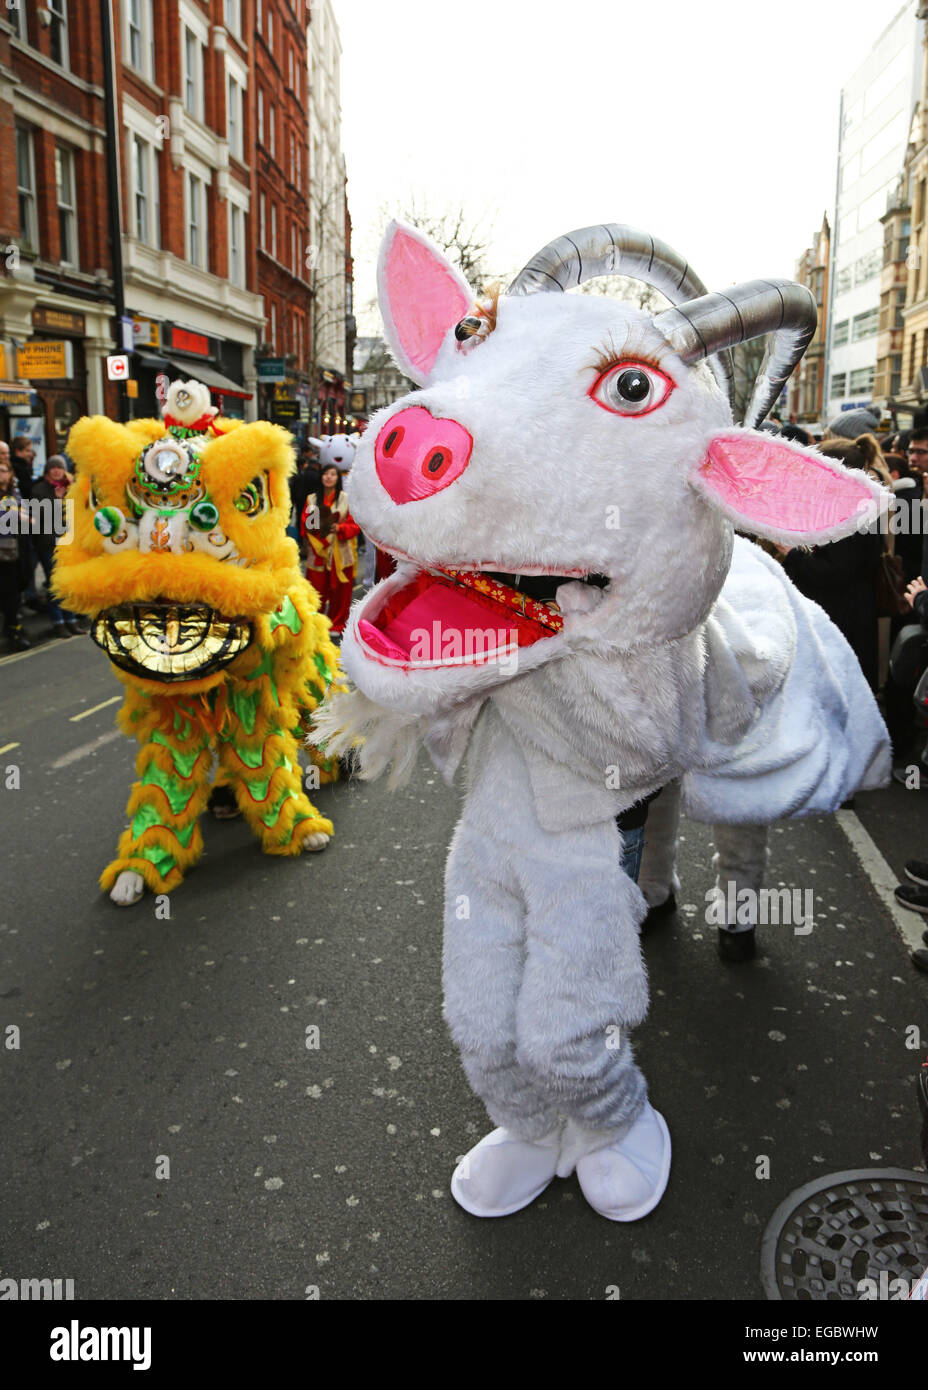 London, UK. 22nd February 2015. Goat figure at the Chinese New Year Parade 2015, London for the year of the goat - Stock Image